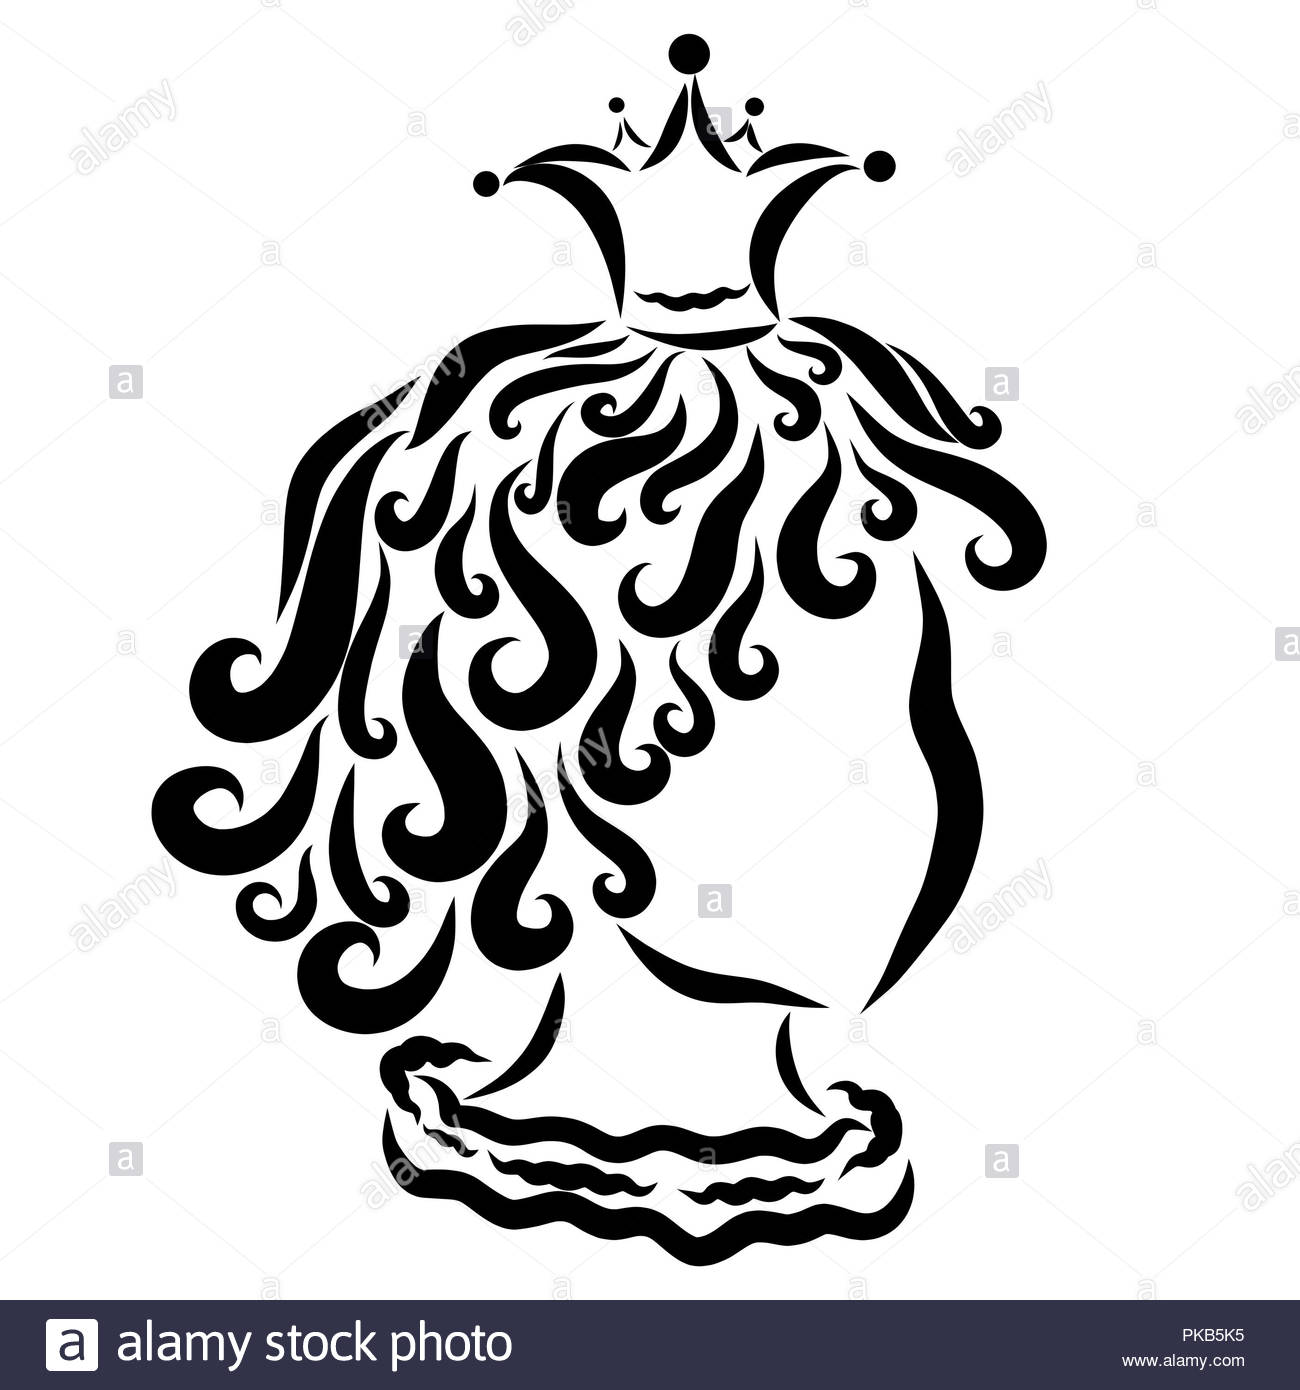 Little curly prince or princess, profile, sketch - Stock Image